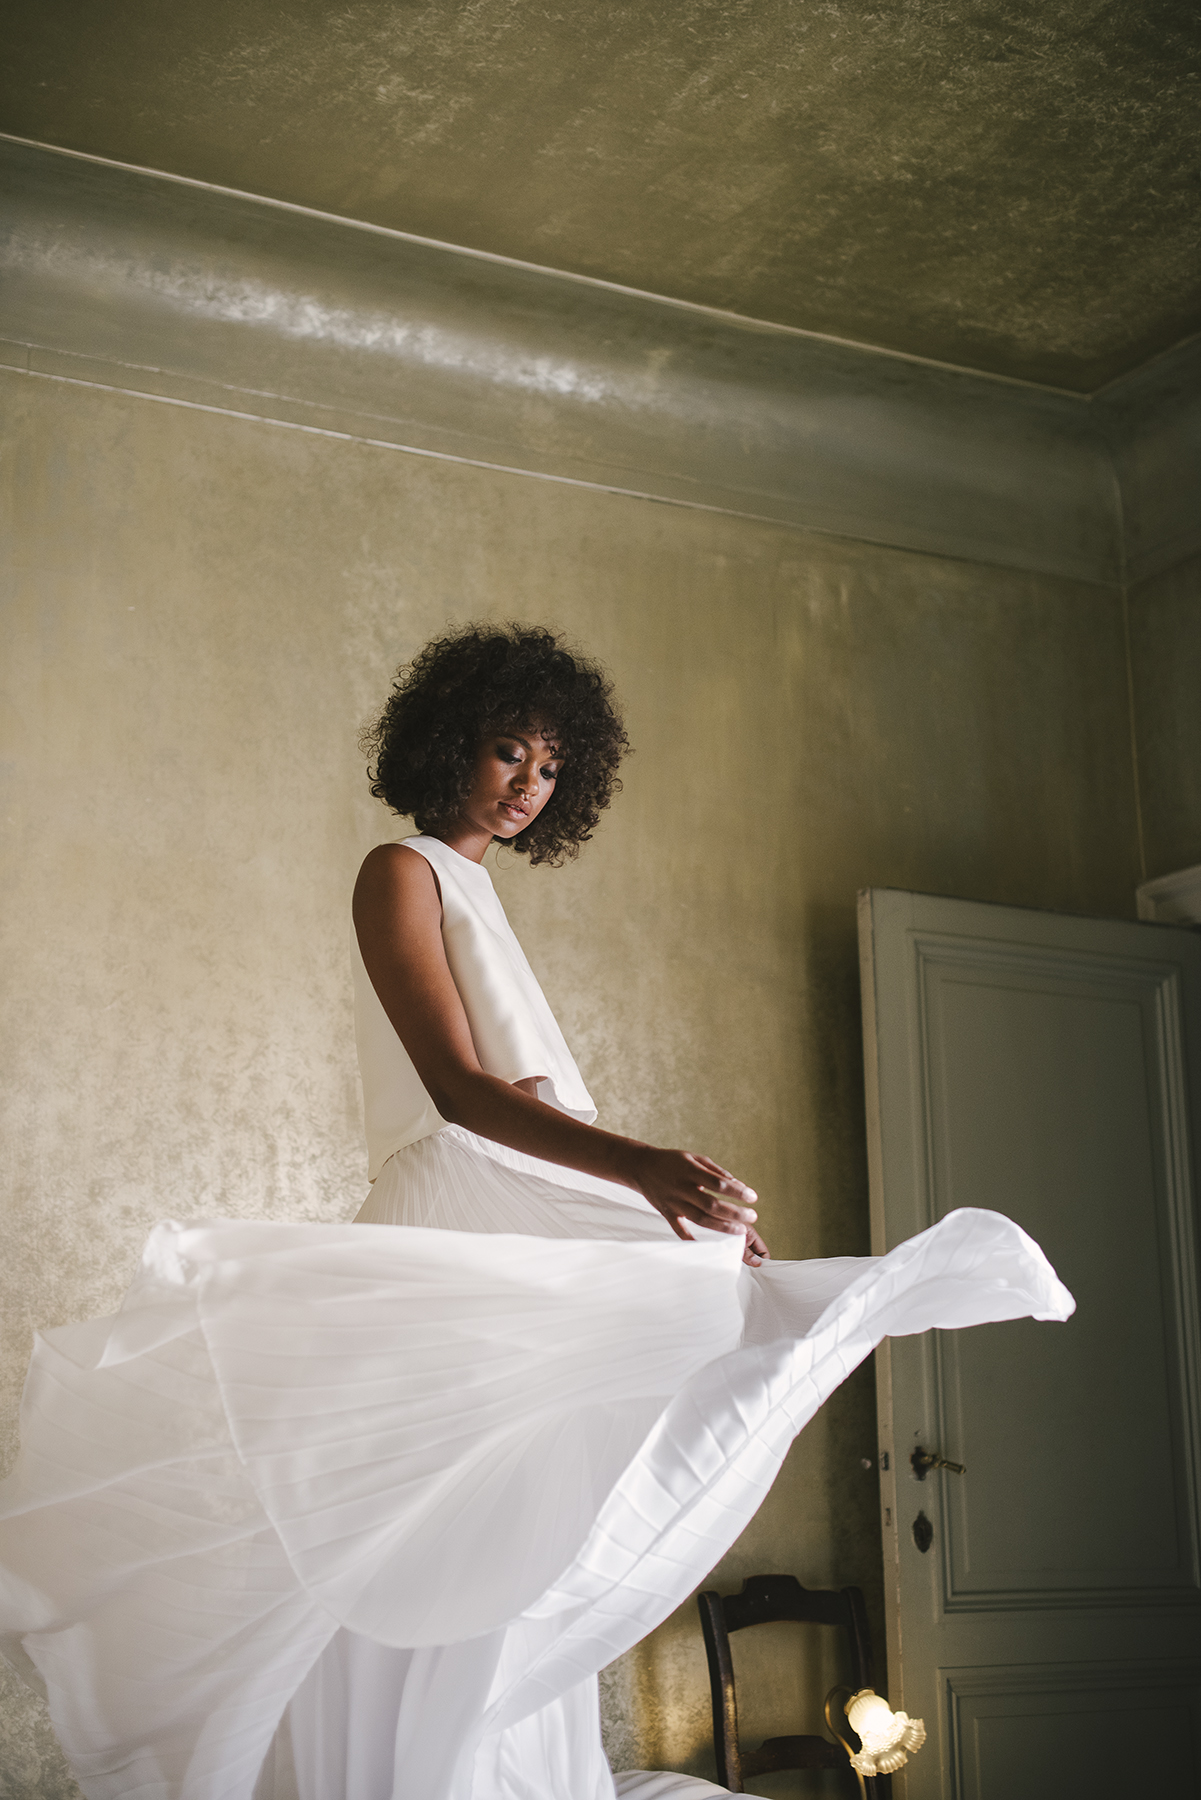 valentine-avoh-robe-mariee-ella-wedding-dress-bruxelles-photo-elodie-timmermans-49.jpg